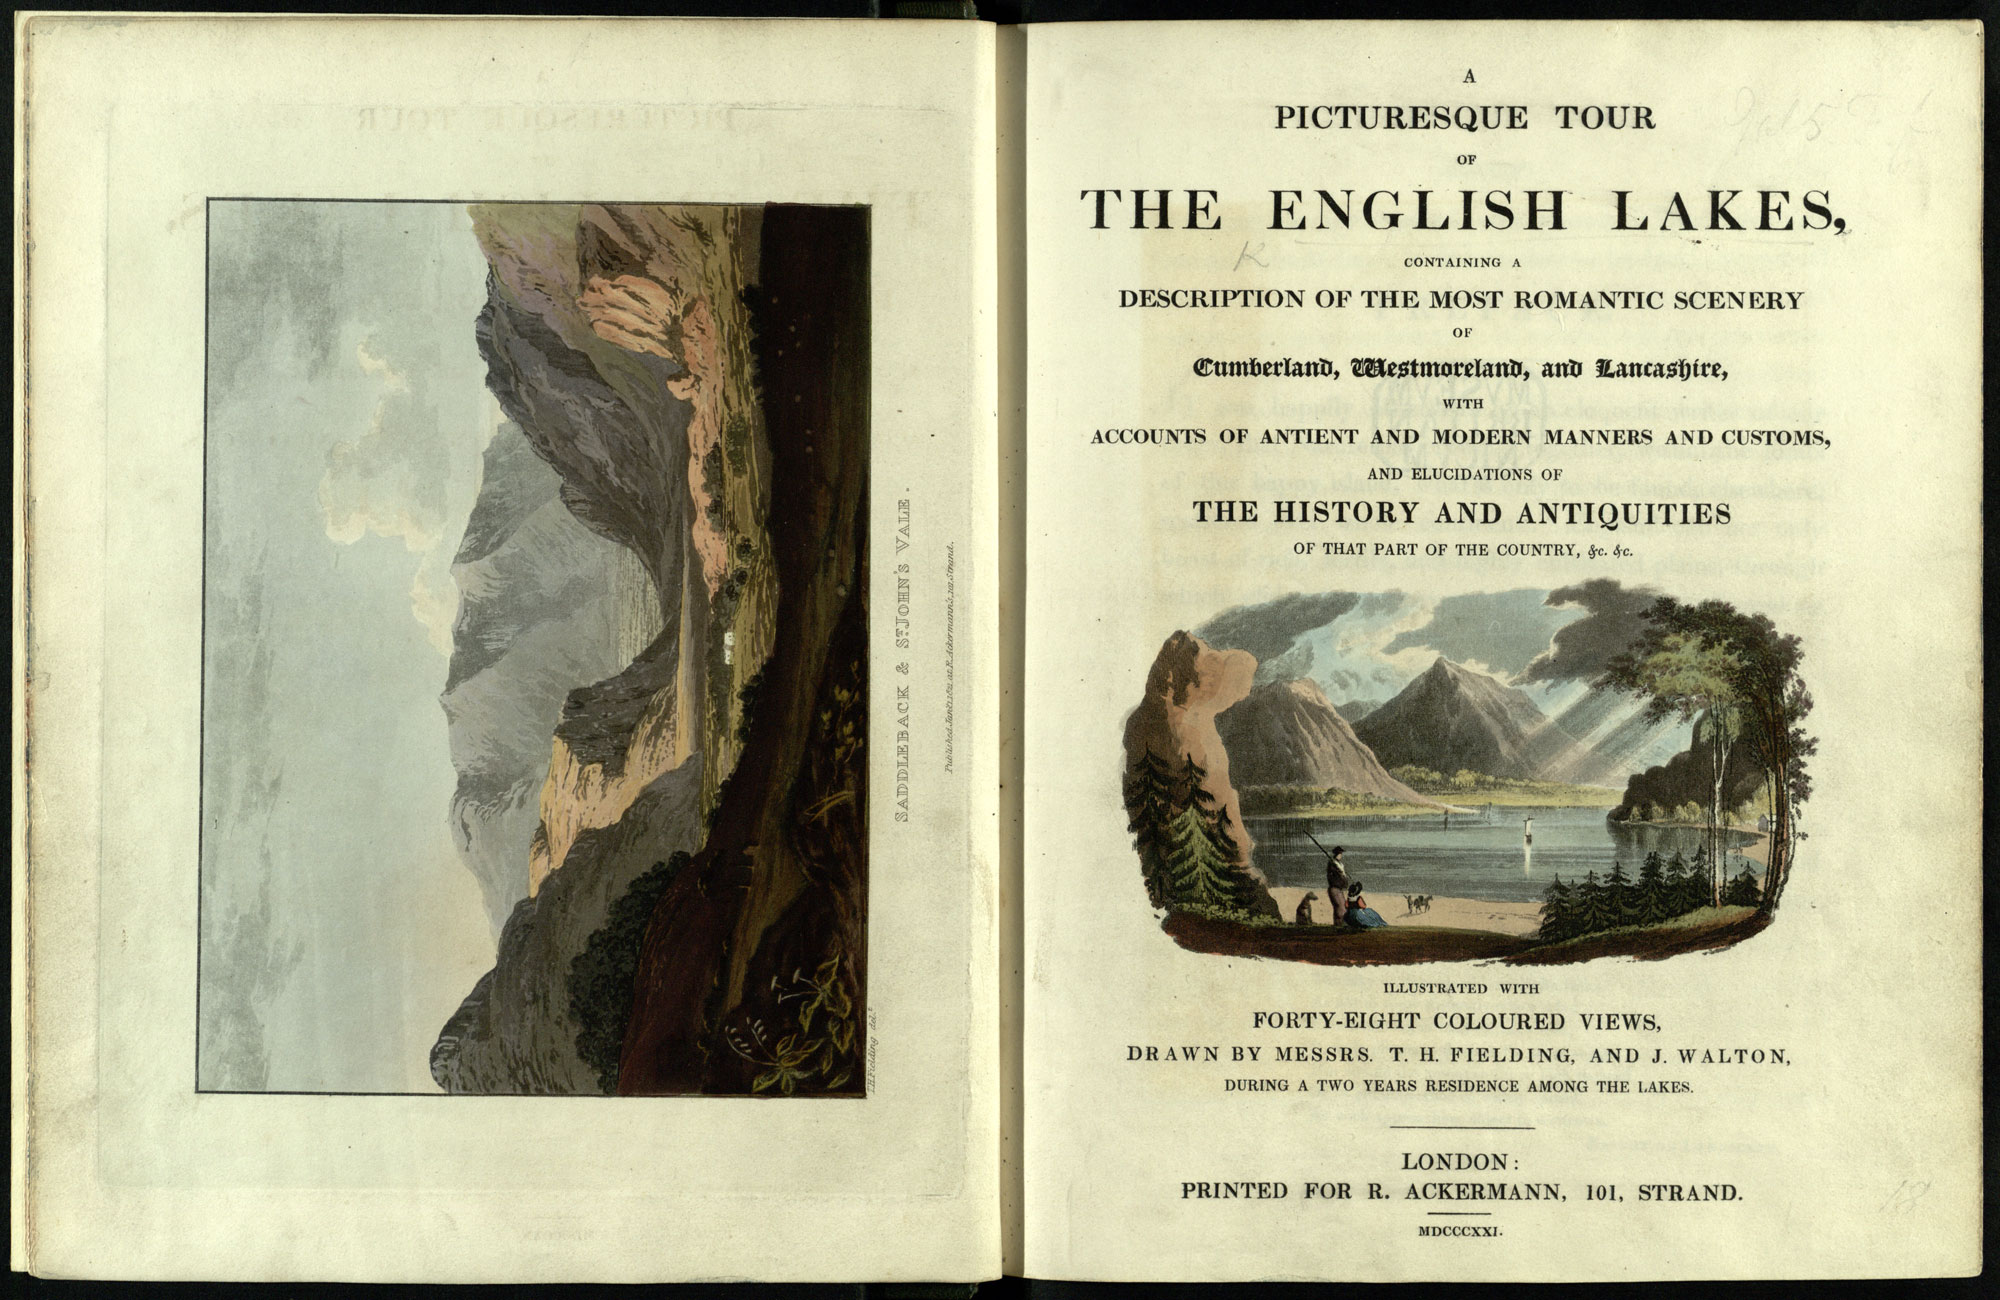 A Picturesque Tour of the English Lakes